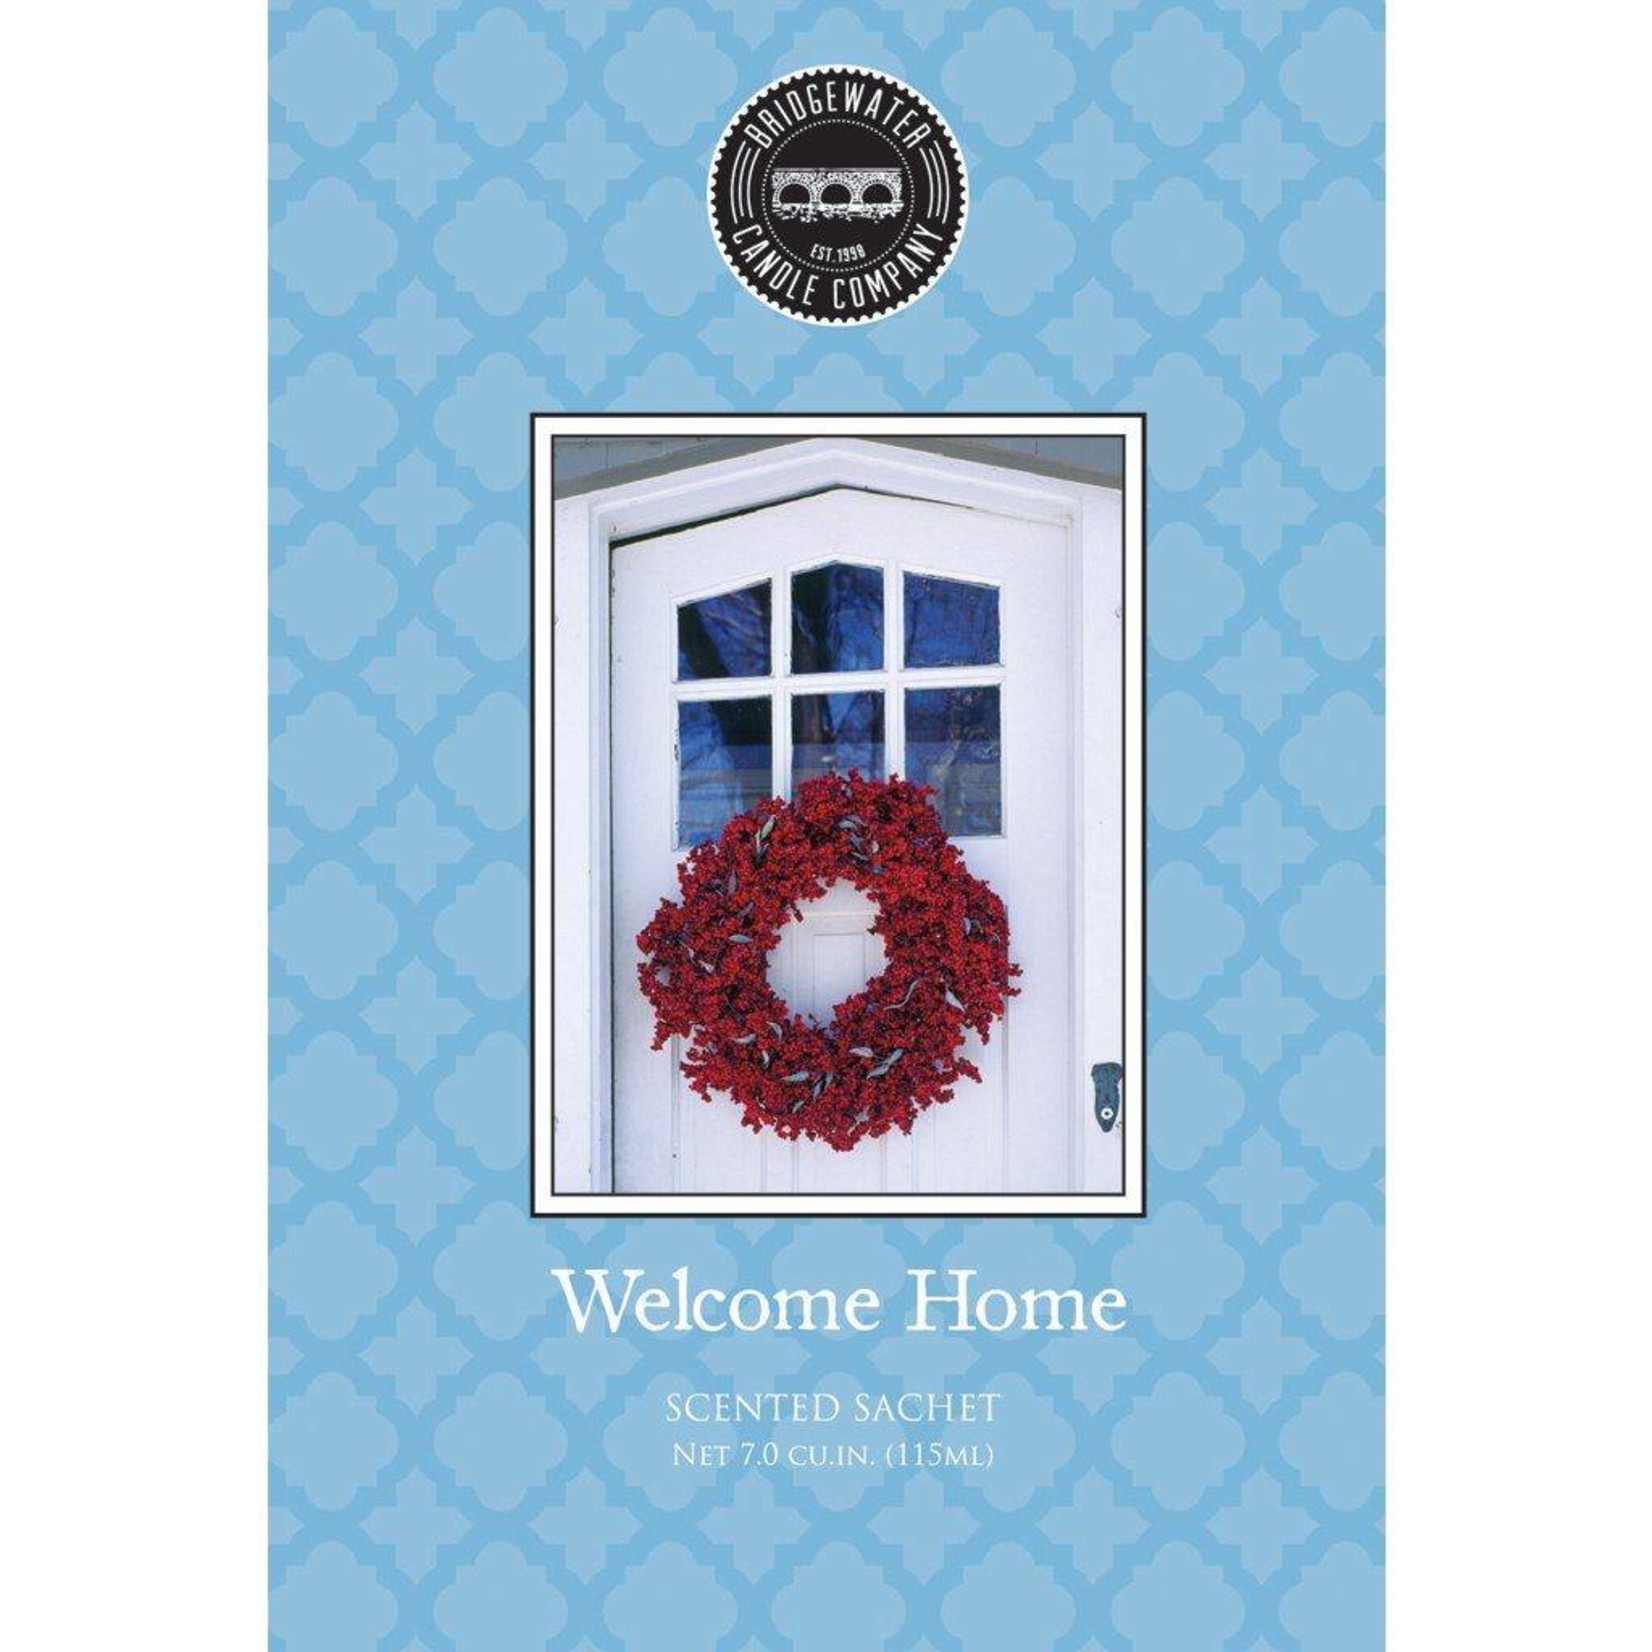 Bridge Water Candle Company BRIDGEWATER WELCOME HOME SCENTED ENVELOPE SACHET